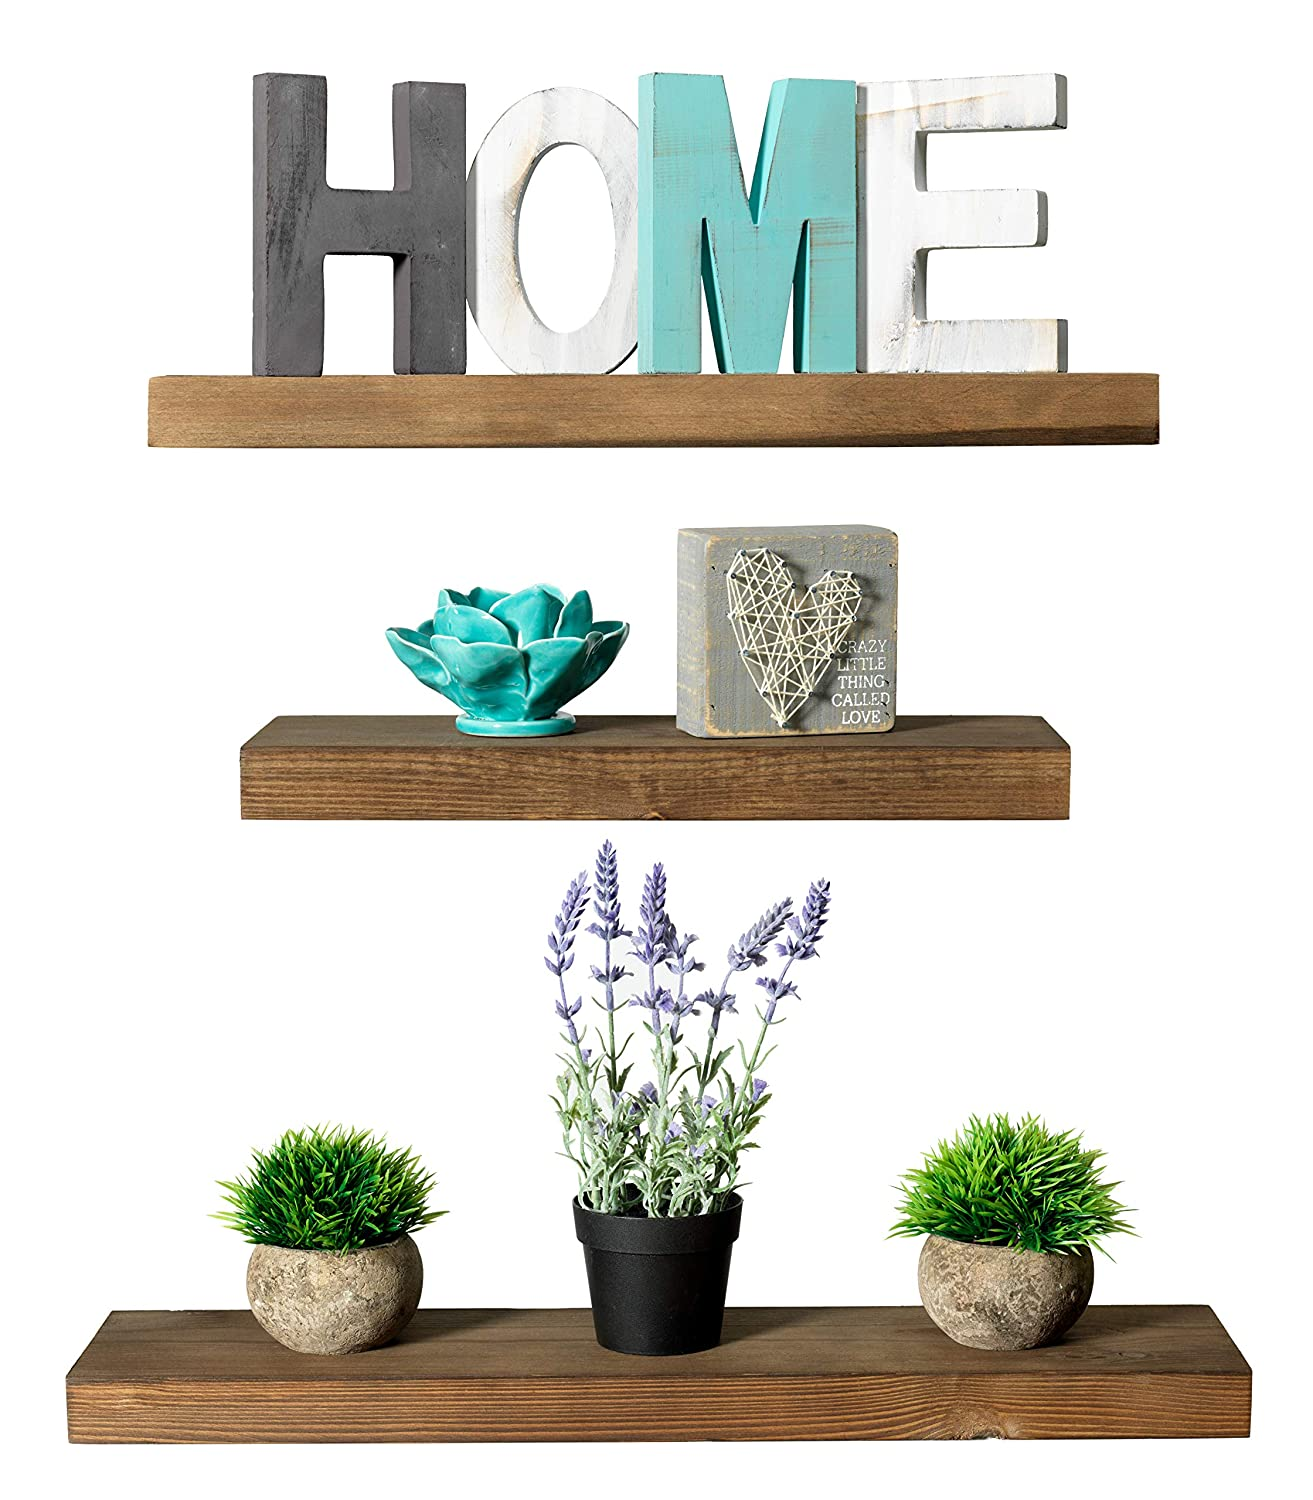 Rustic Farmhouse 3 Tier Floating Wood Shelf - Floating Wall Shelves (Set of 3), Hardware and Fasteners Included (White Oak, 3 Tier)